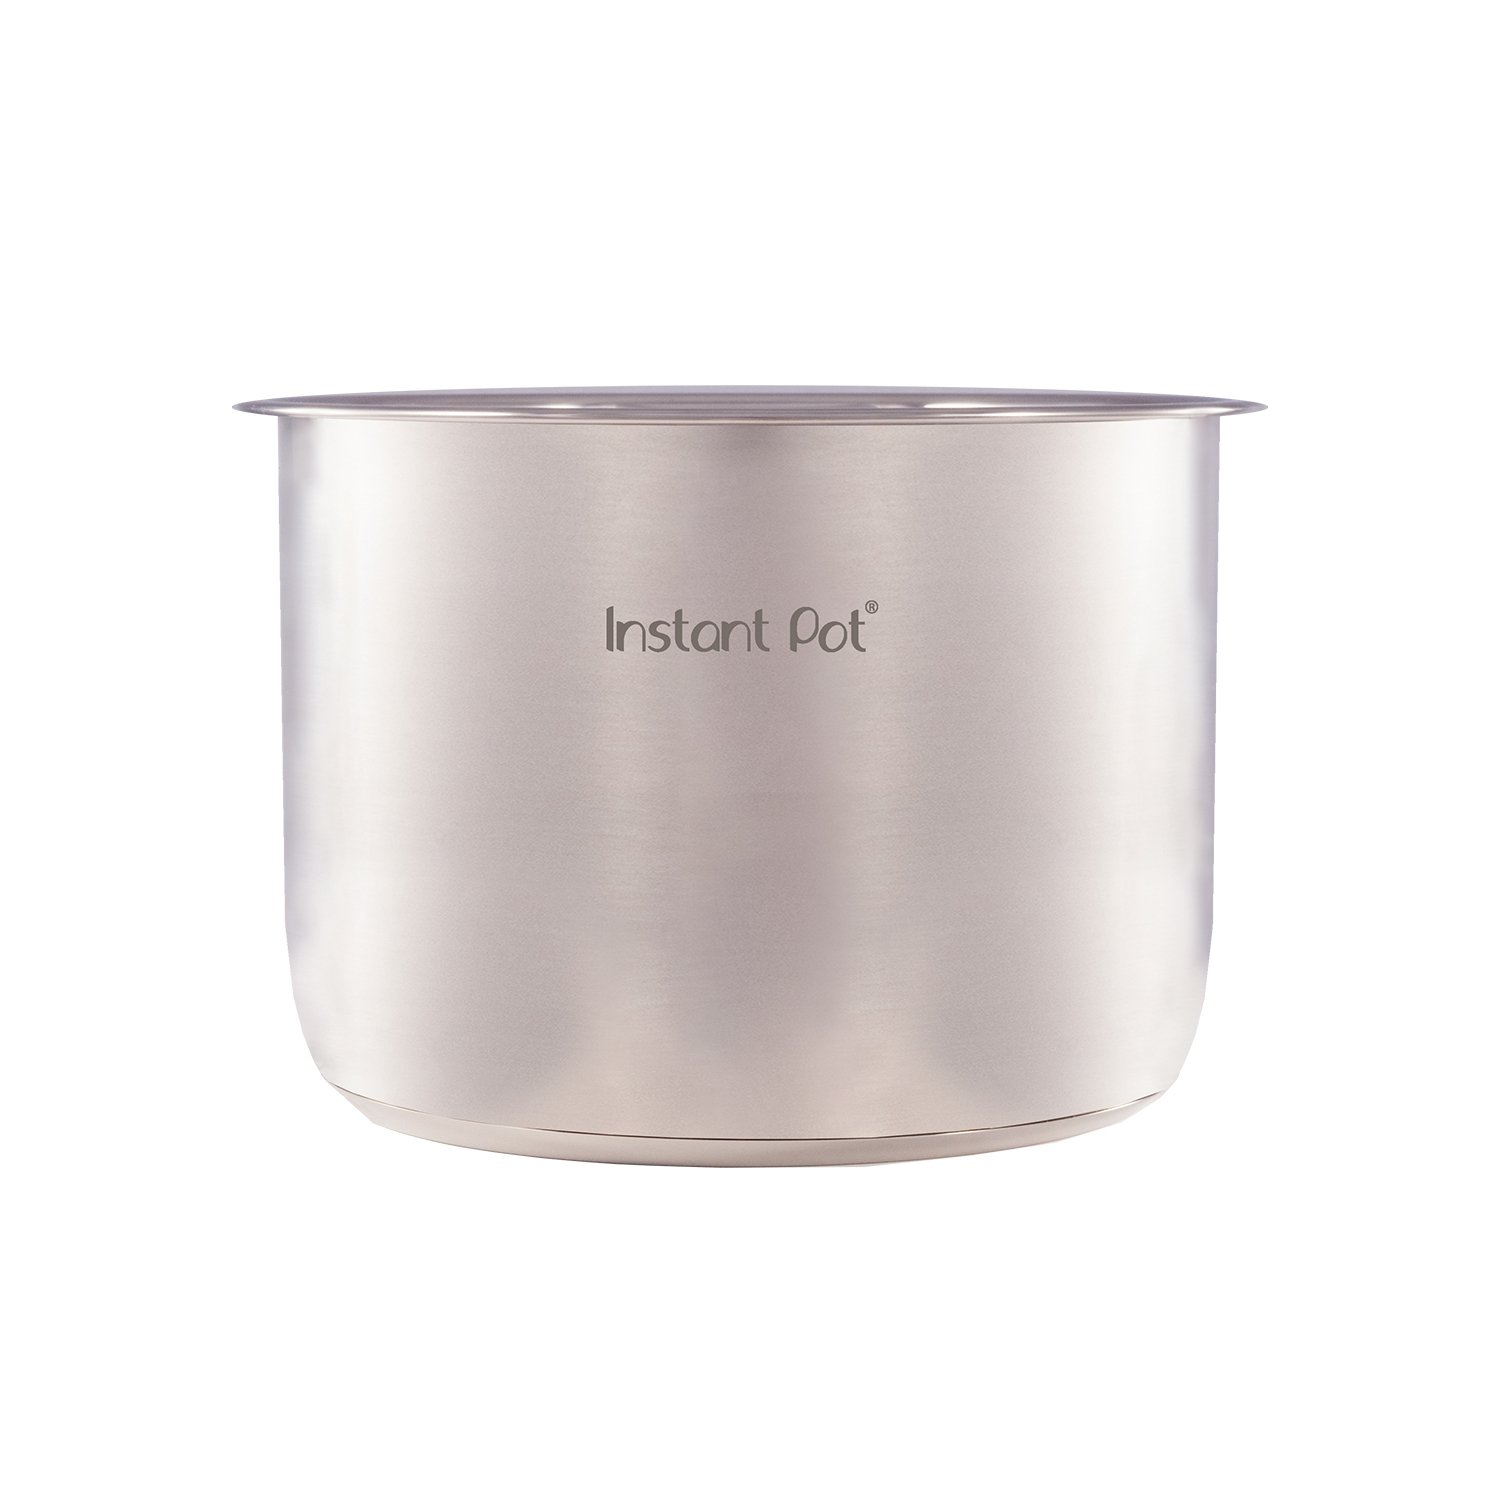 Instant Pot Stainless Steel Inner Cooking Pot - 6 Quart by Instant Pot